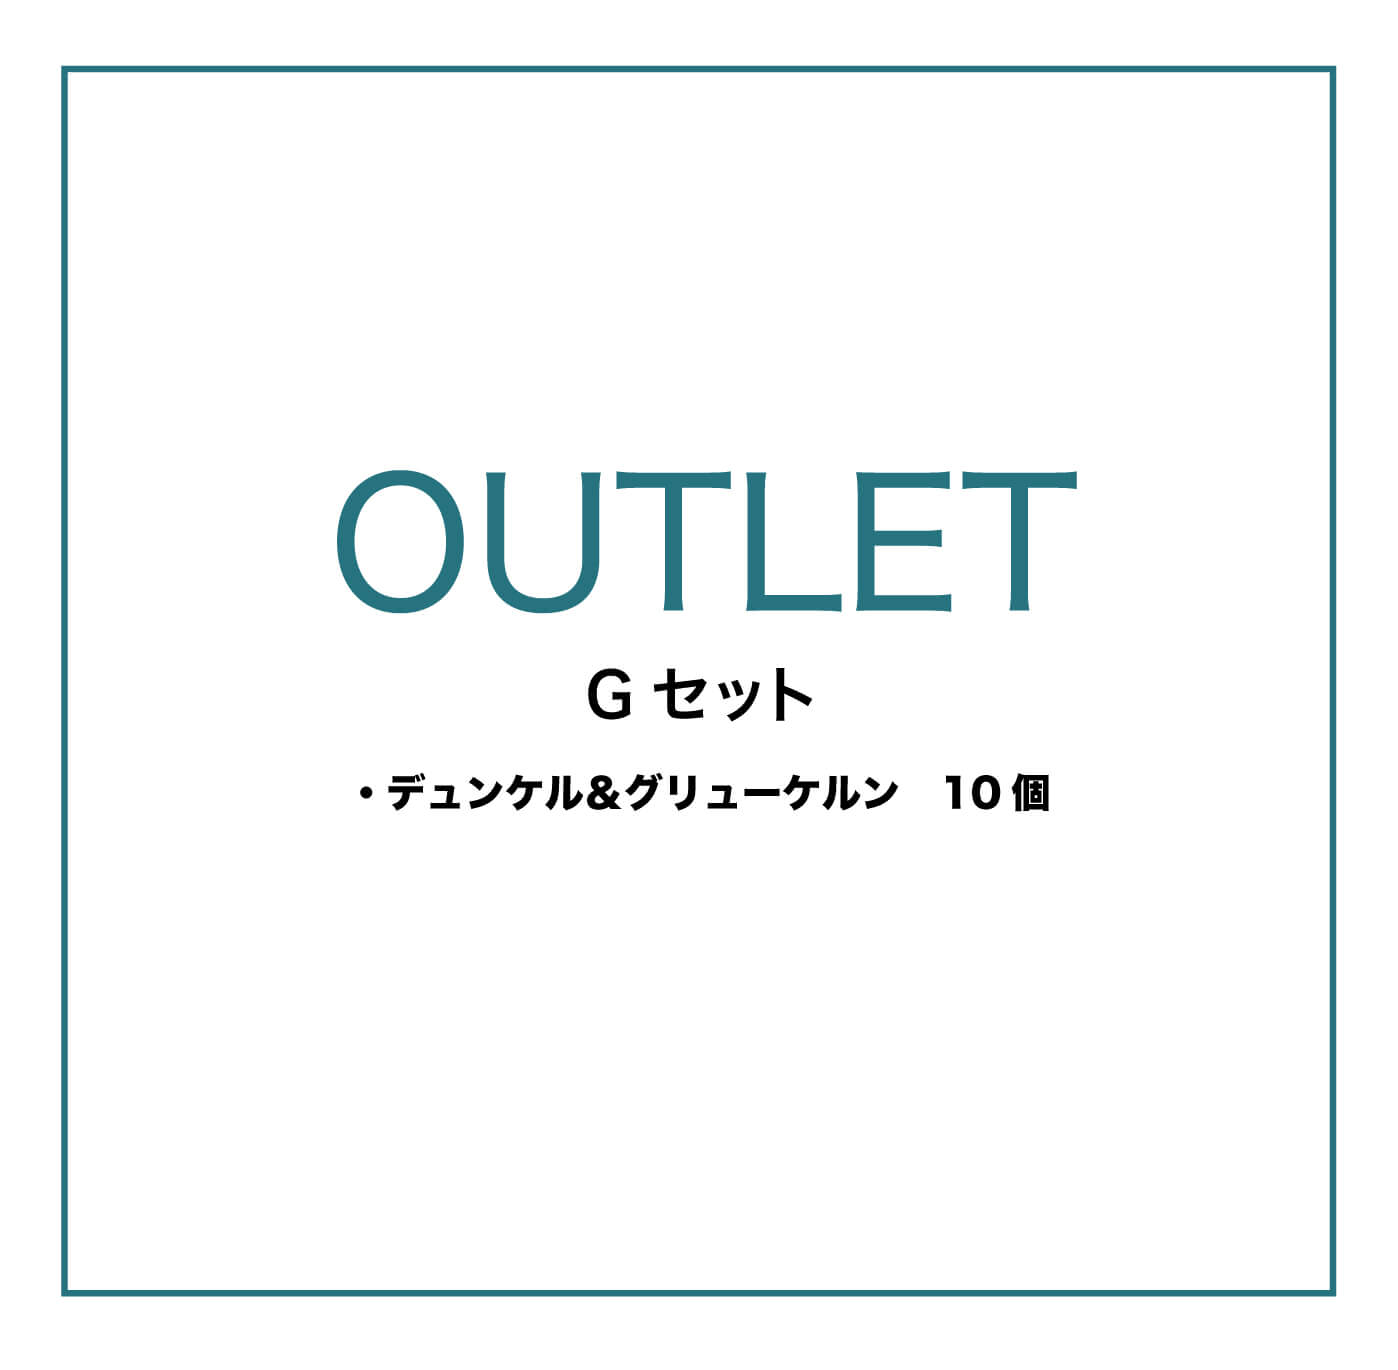 OUTLET_G